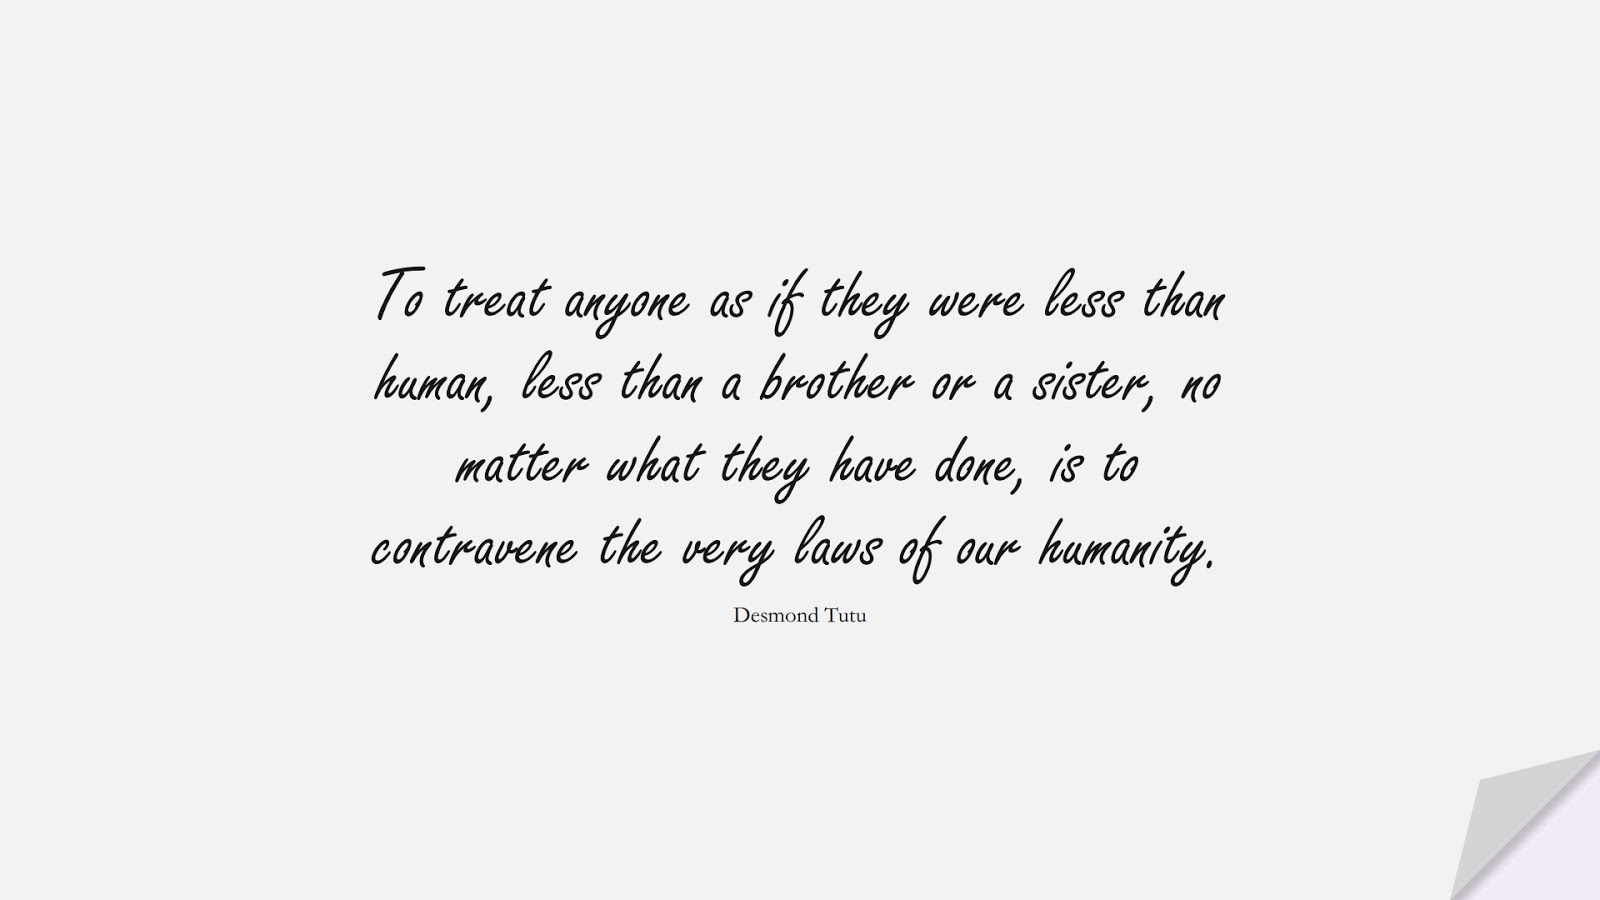 To treat anyone as if they were less than human, less than a brother or a sister, no matter what they have done, is to contravene the very laws of our humanity. (Desmond Tutu);  #HumanityQuotes